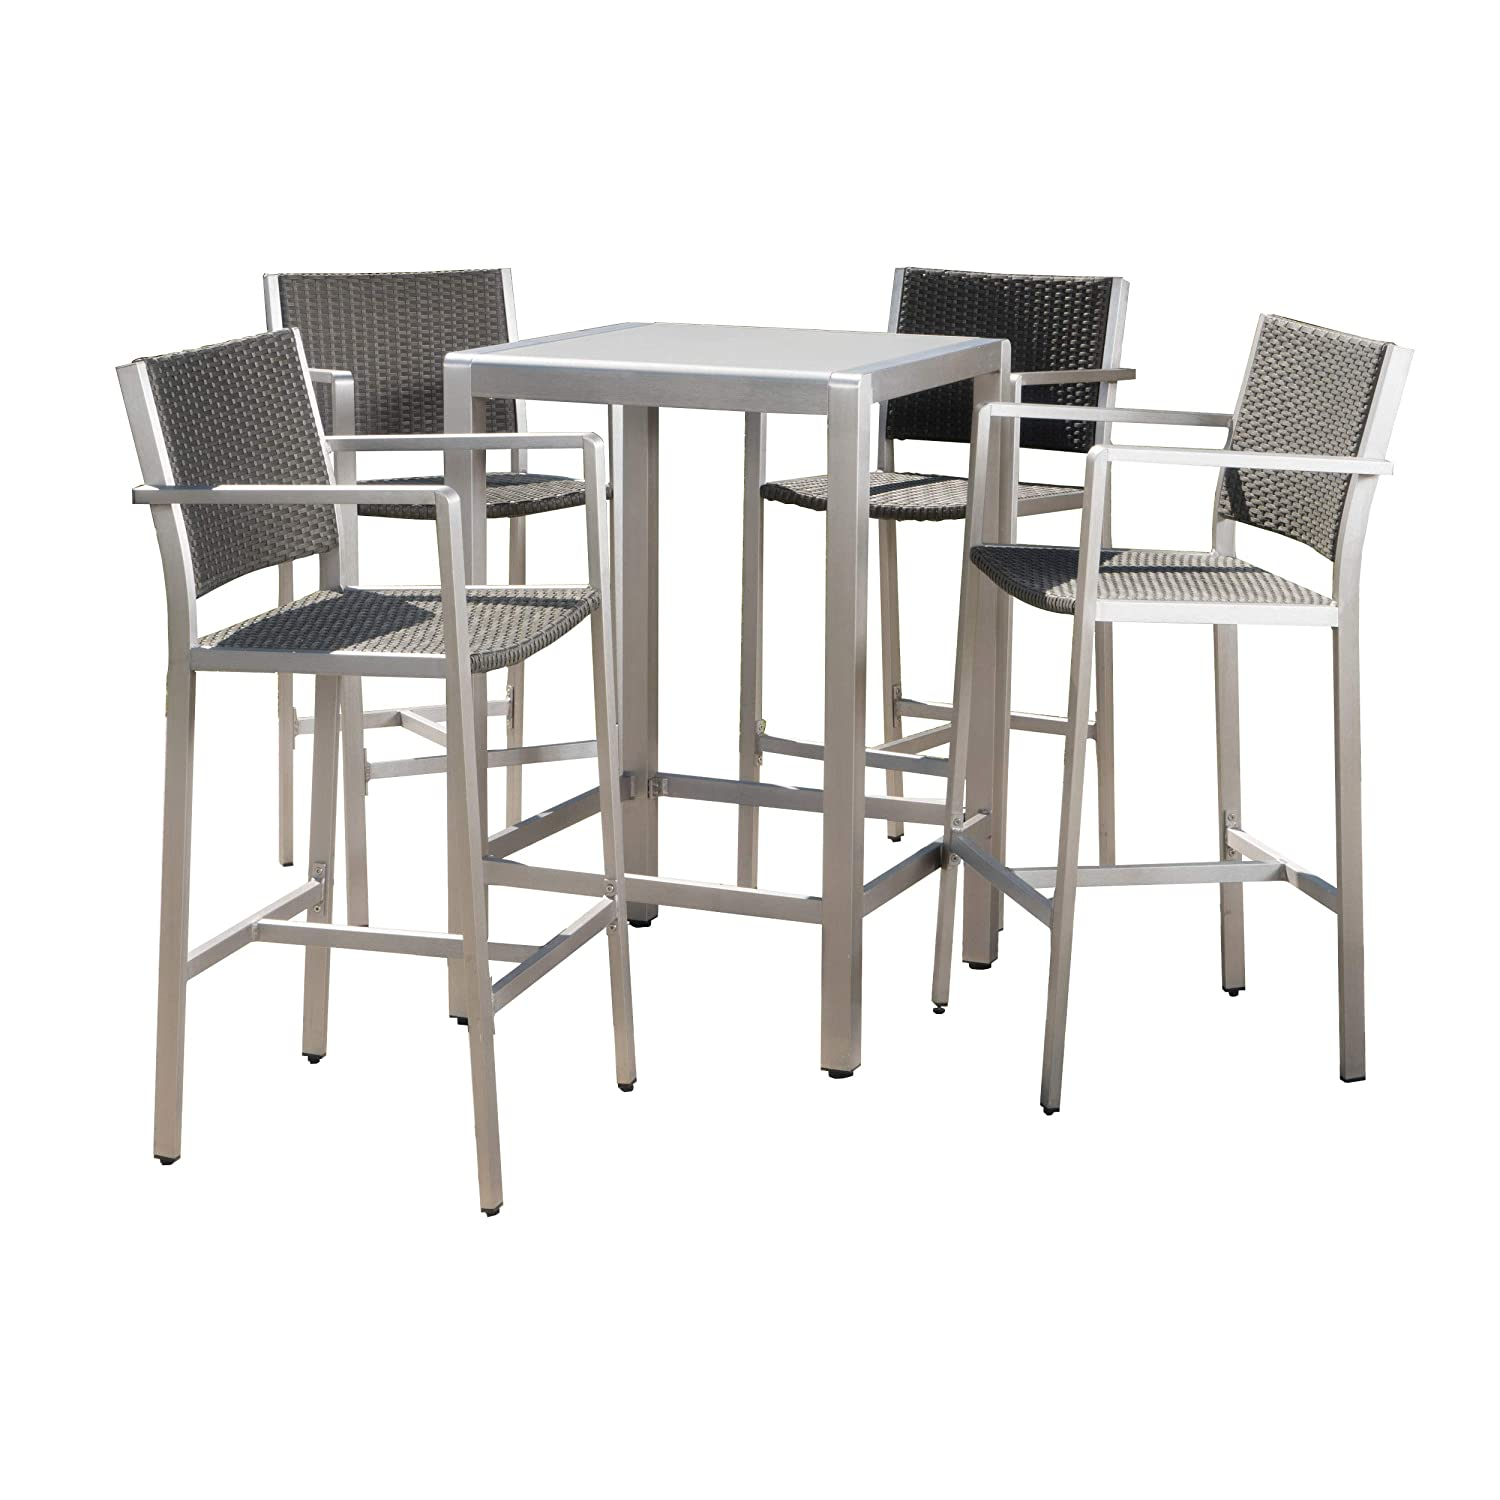 GDF Studio Crested Bay Patio Furniture ~ 5 Piece Outdoor Wicker Aluminum Bar Set (Tempered Glass Table Top)